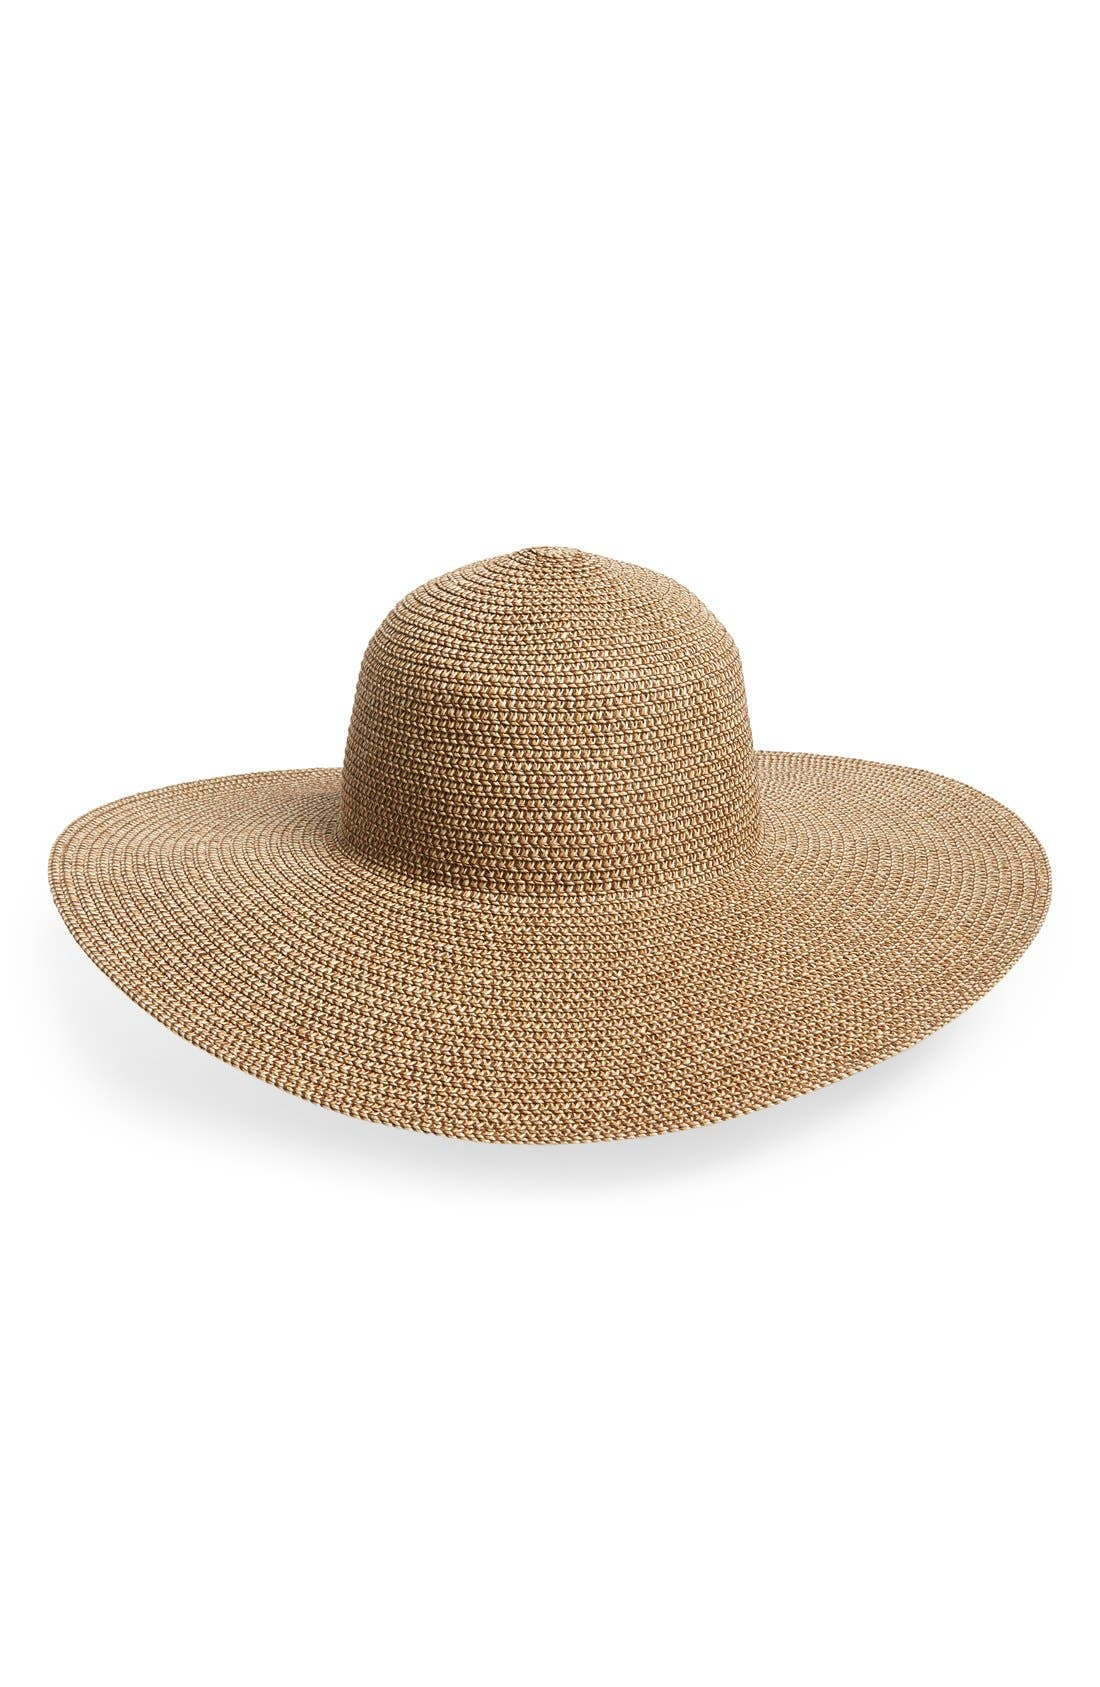 Main Image - David & Young Floppy Straw Hat